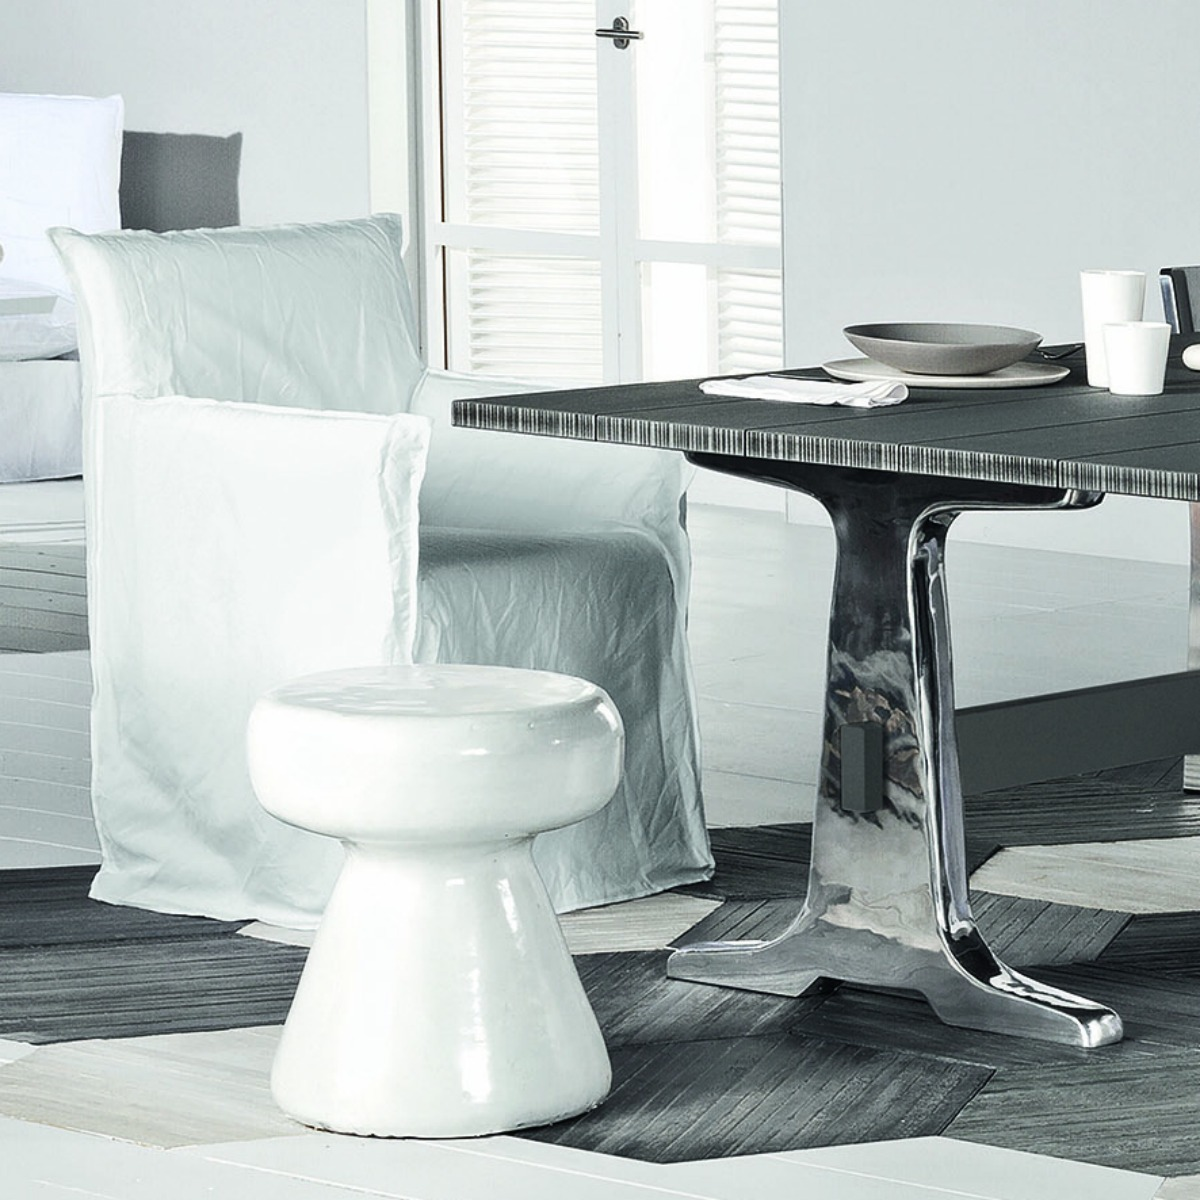 gervasoni ghost 24 - Dining chair with arms. White linen removable cover.